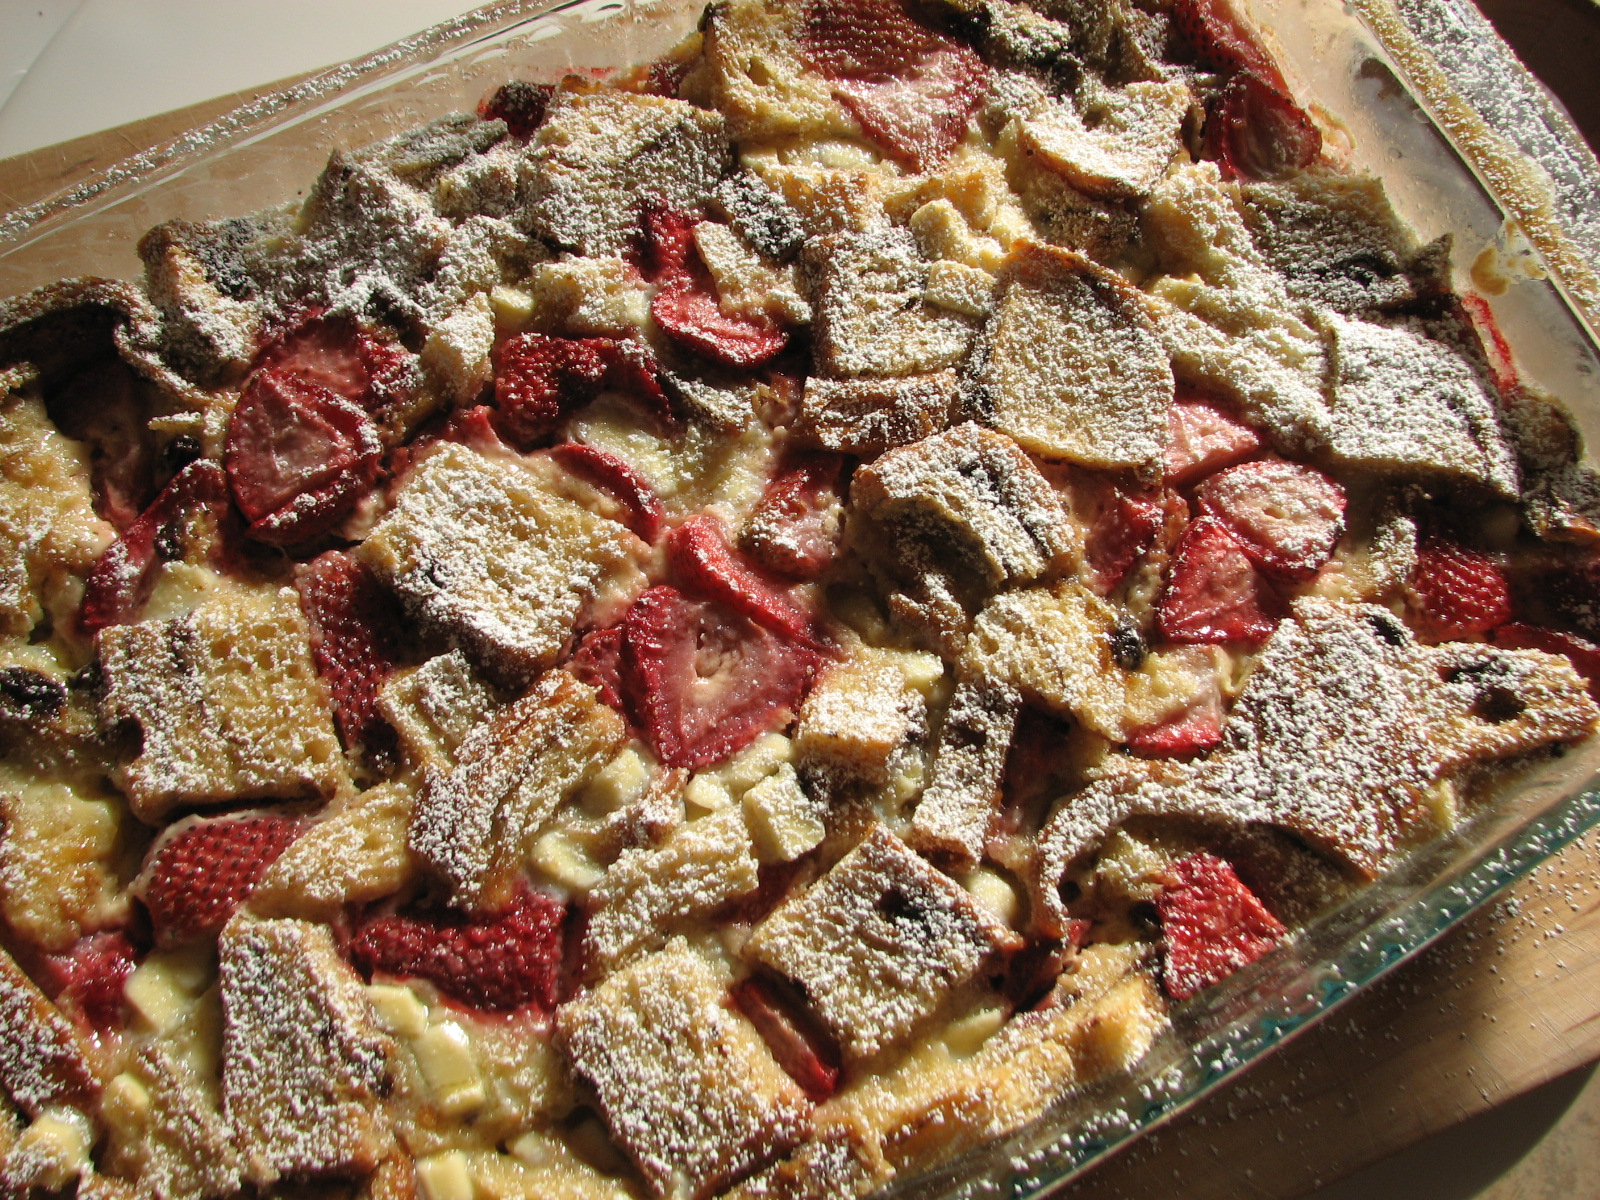 Strawberry and White Chocolate Bread Pudding